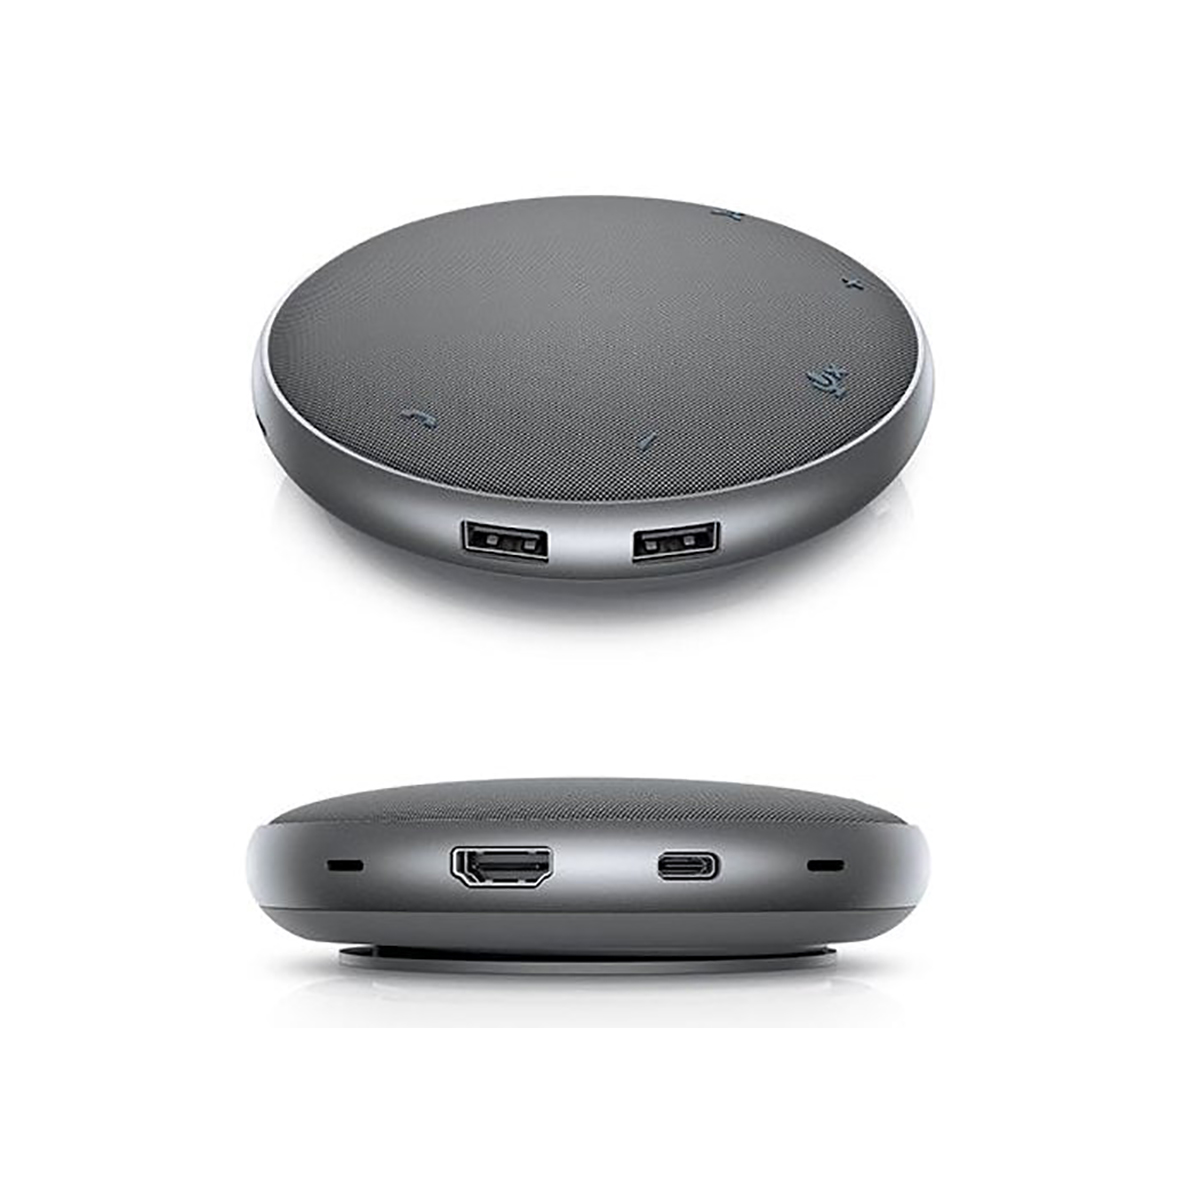 Dell MH3021P Speakerphone & Conference System with Type-C Port